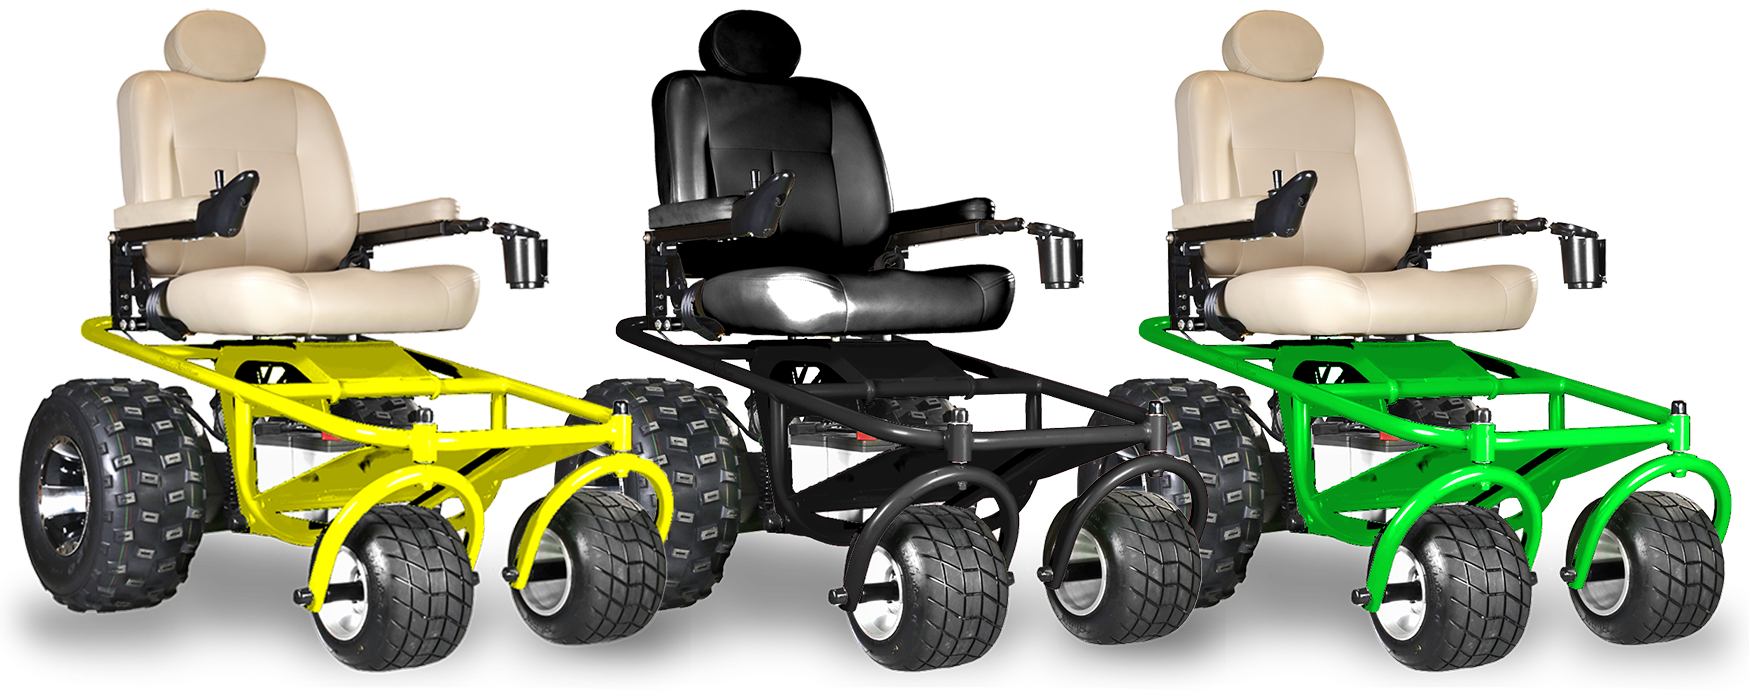 Sales Beach Mobility Rentals And Manufacturing